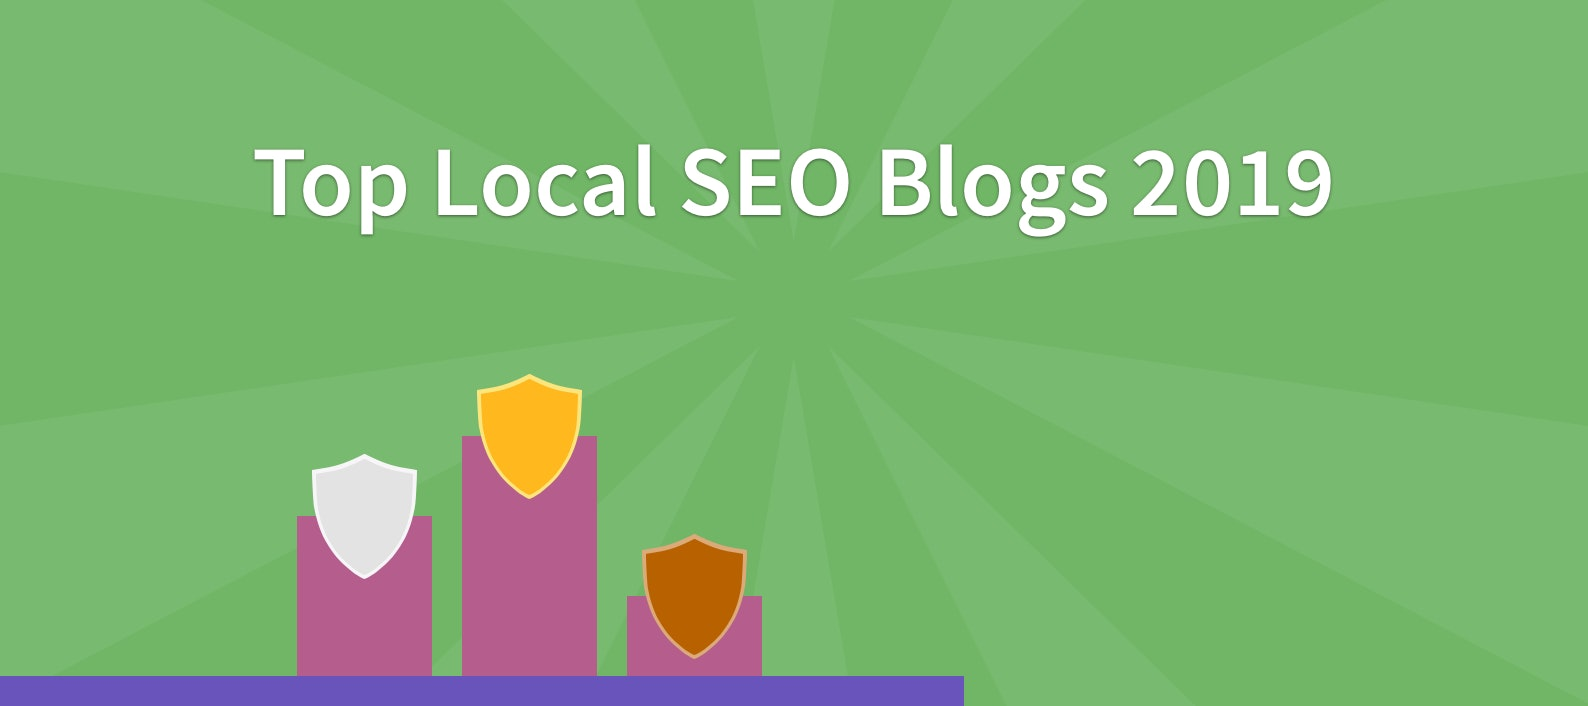 Top Local SEO Blogs 2019